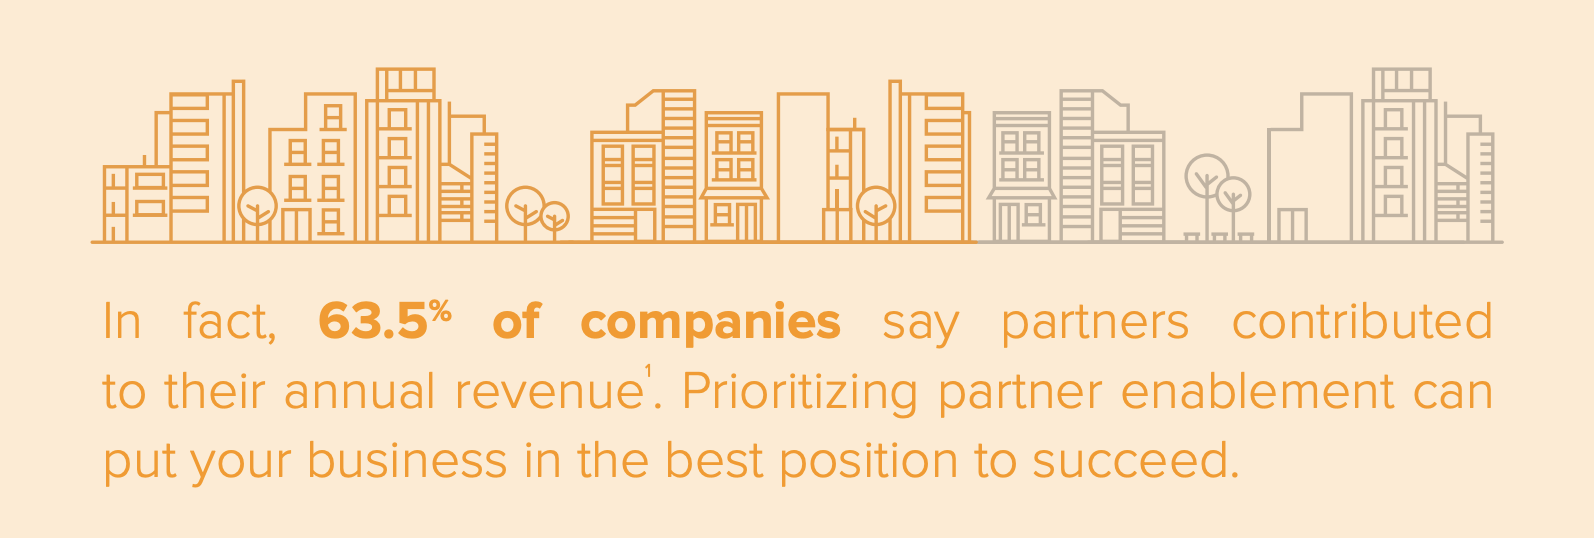 63.5% of companies say partners contributed to their annual revenue